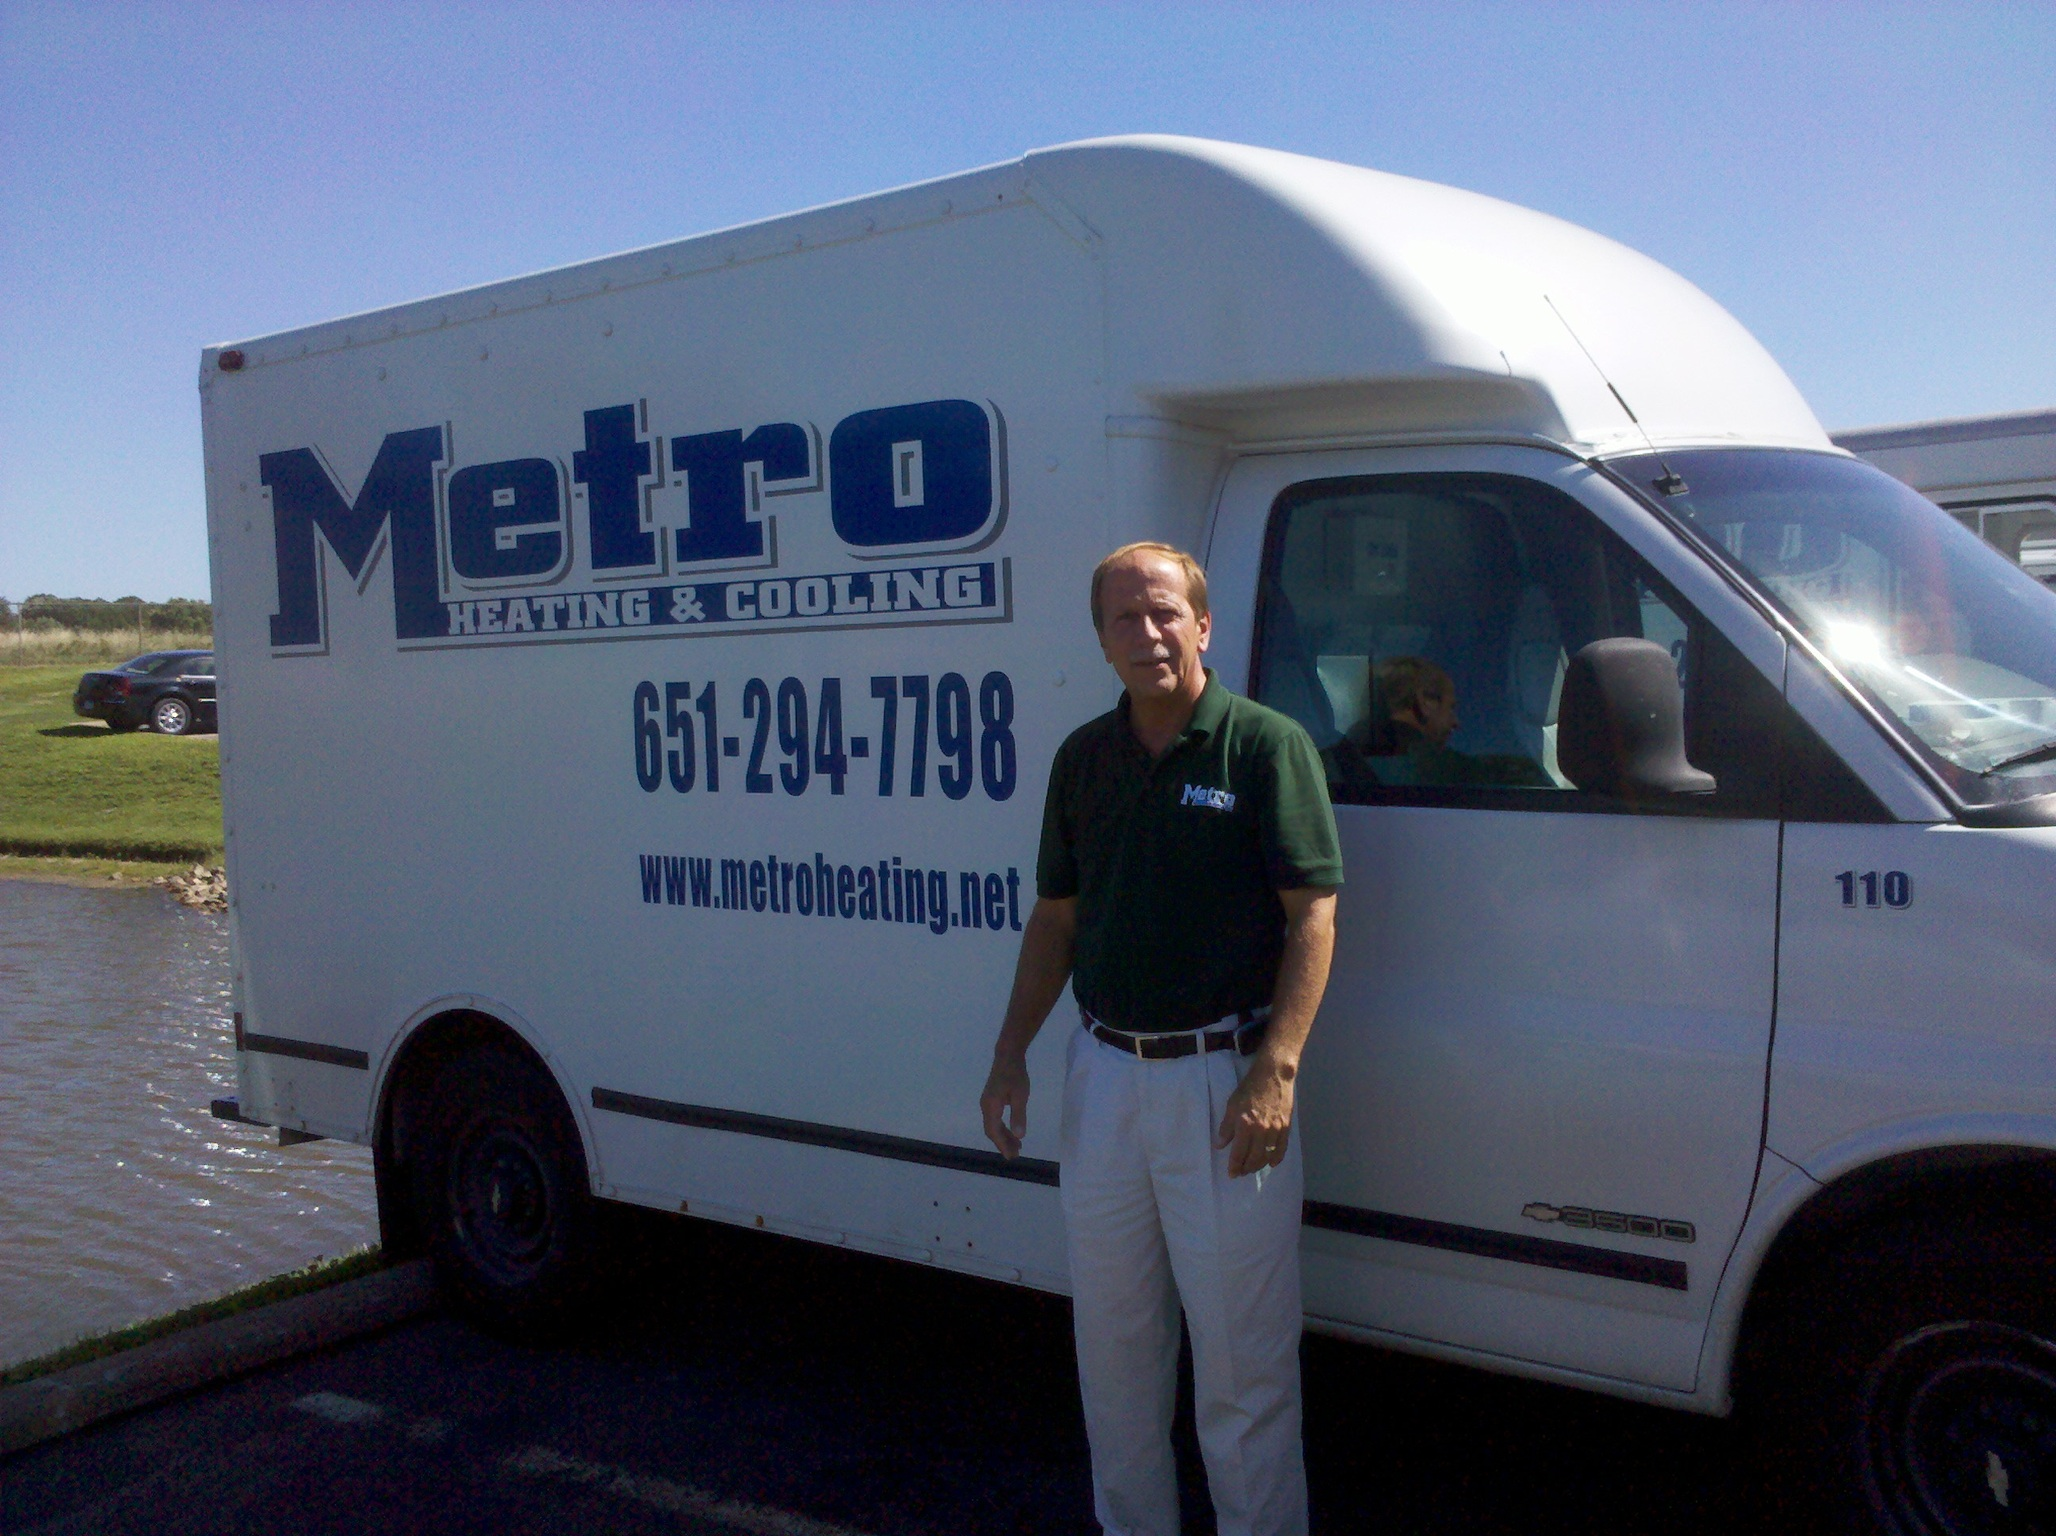 Dave George Reiland standing in front of a Metro Heating & Cooling branded van